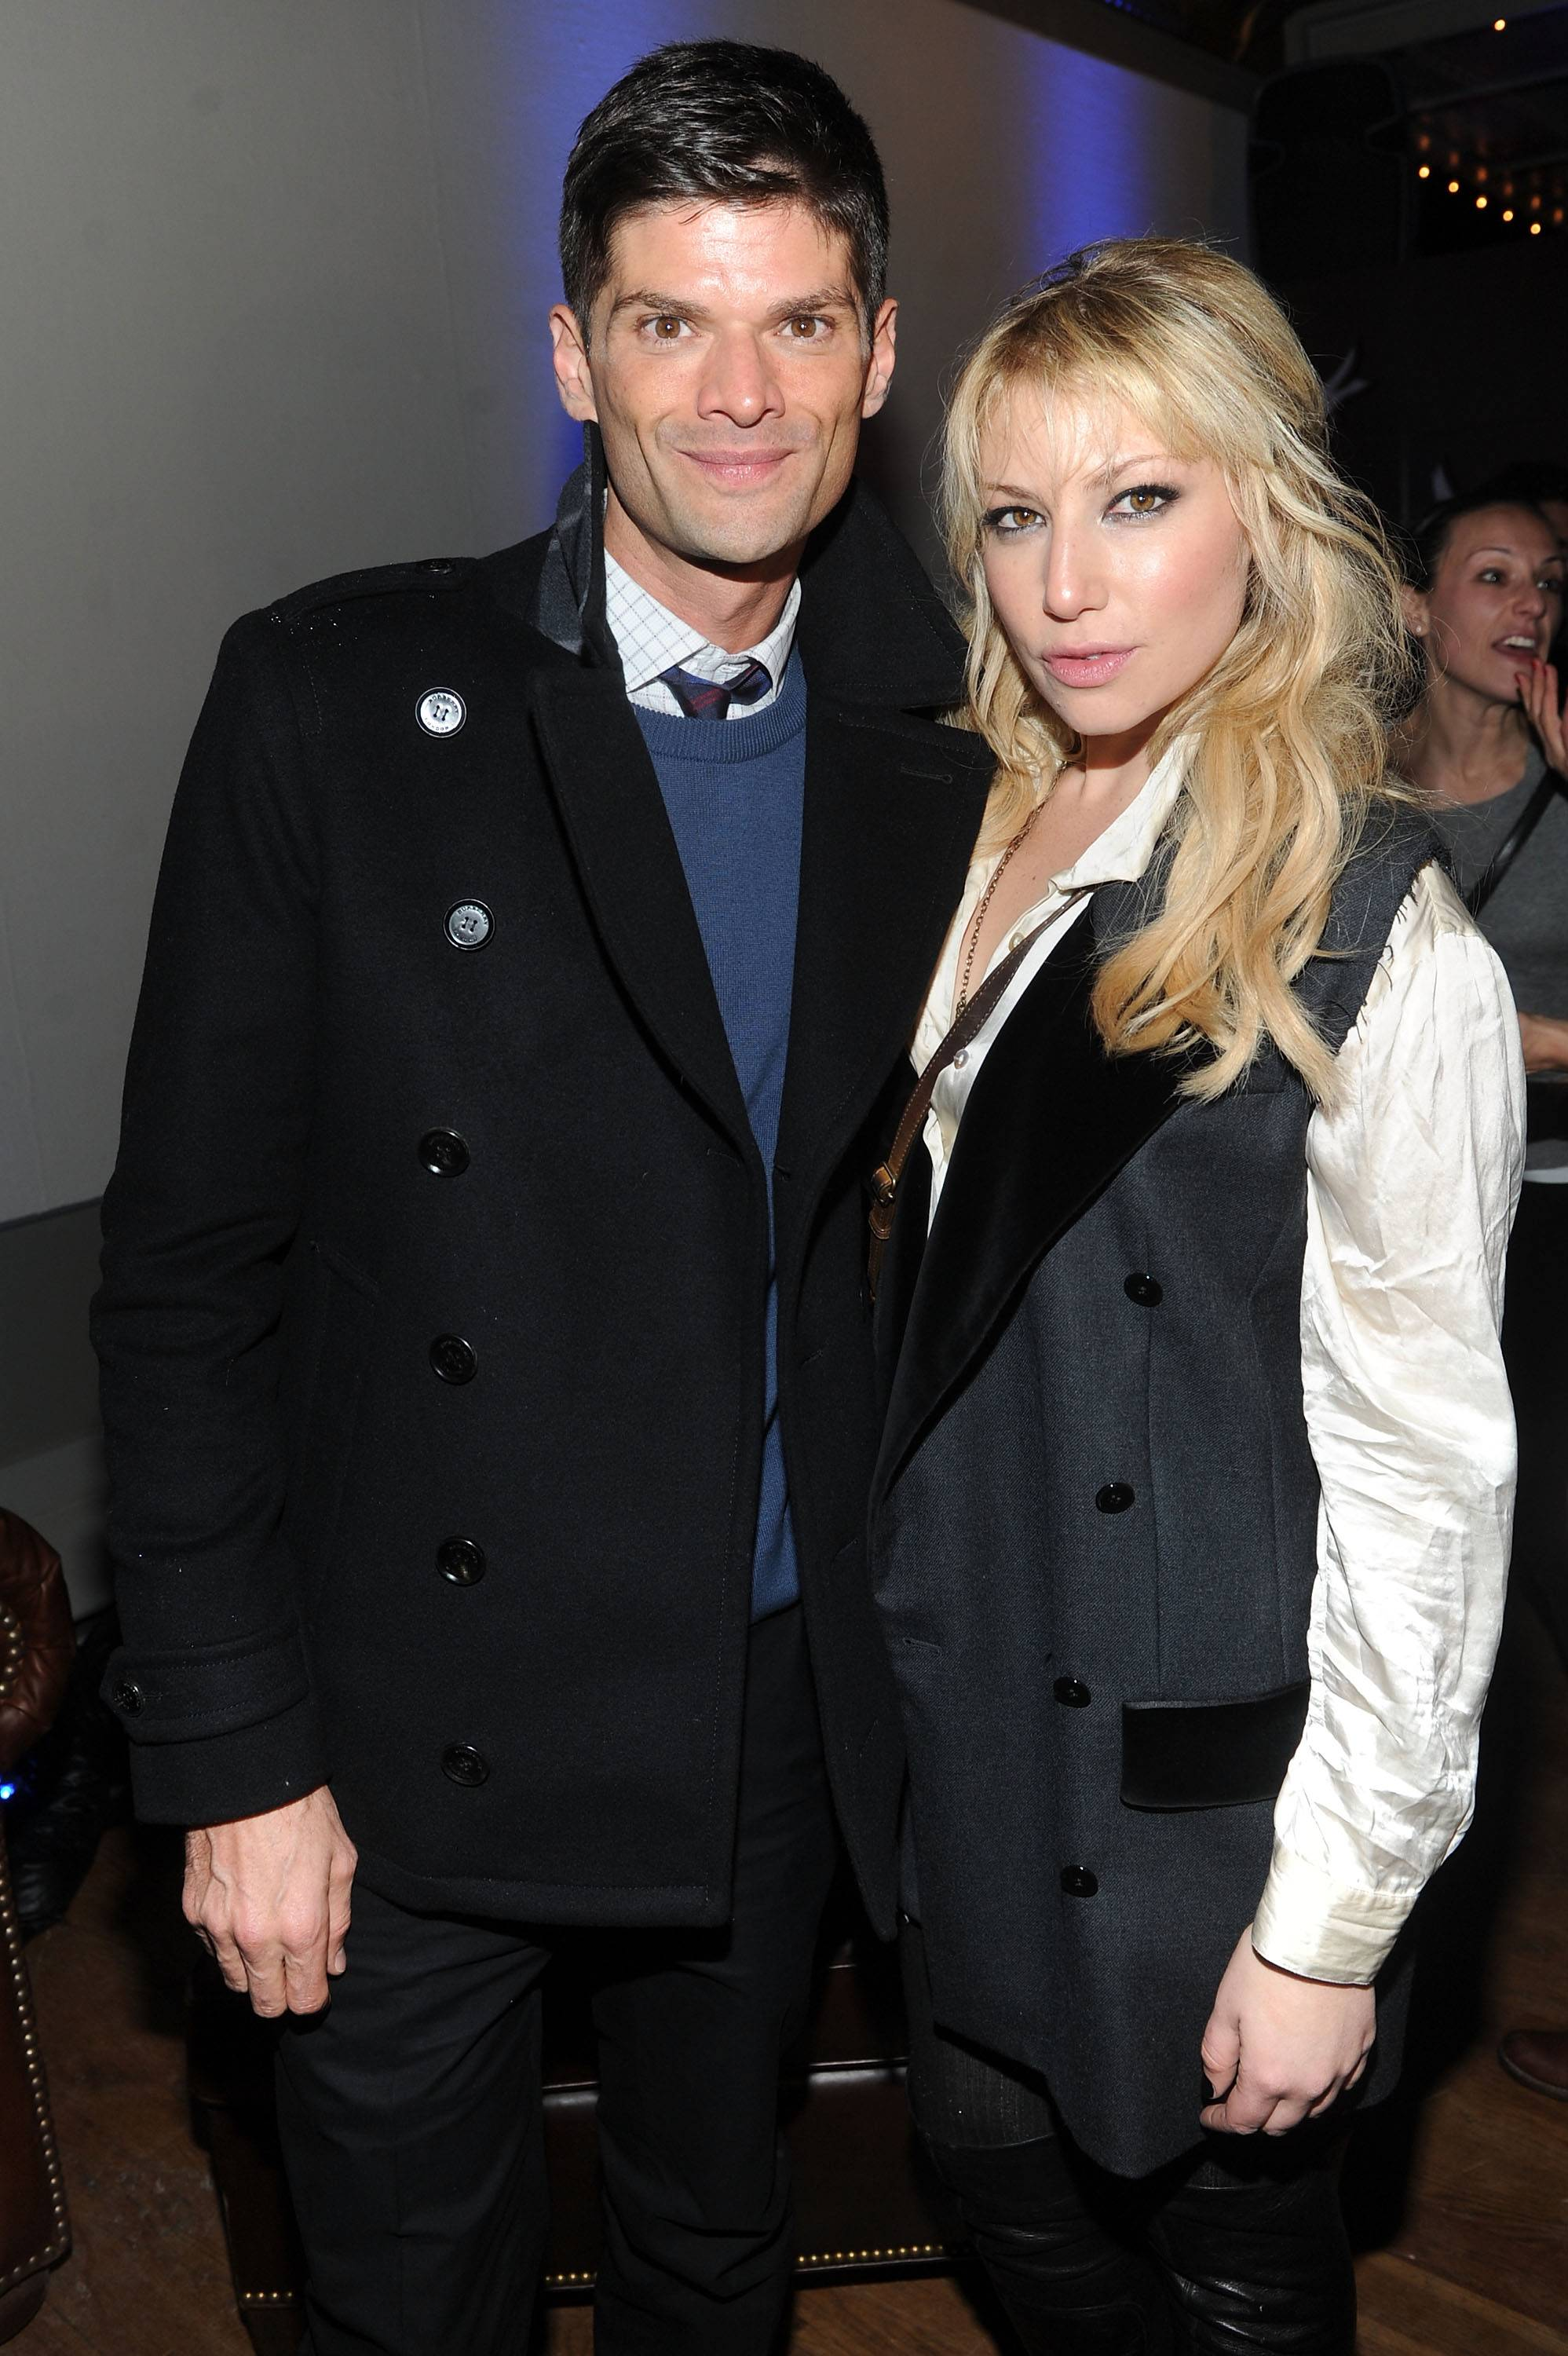 Will McCormack and Ari Graynor at